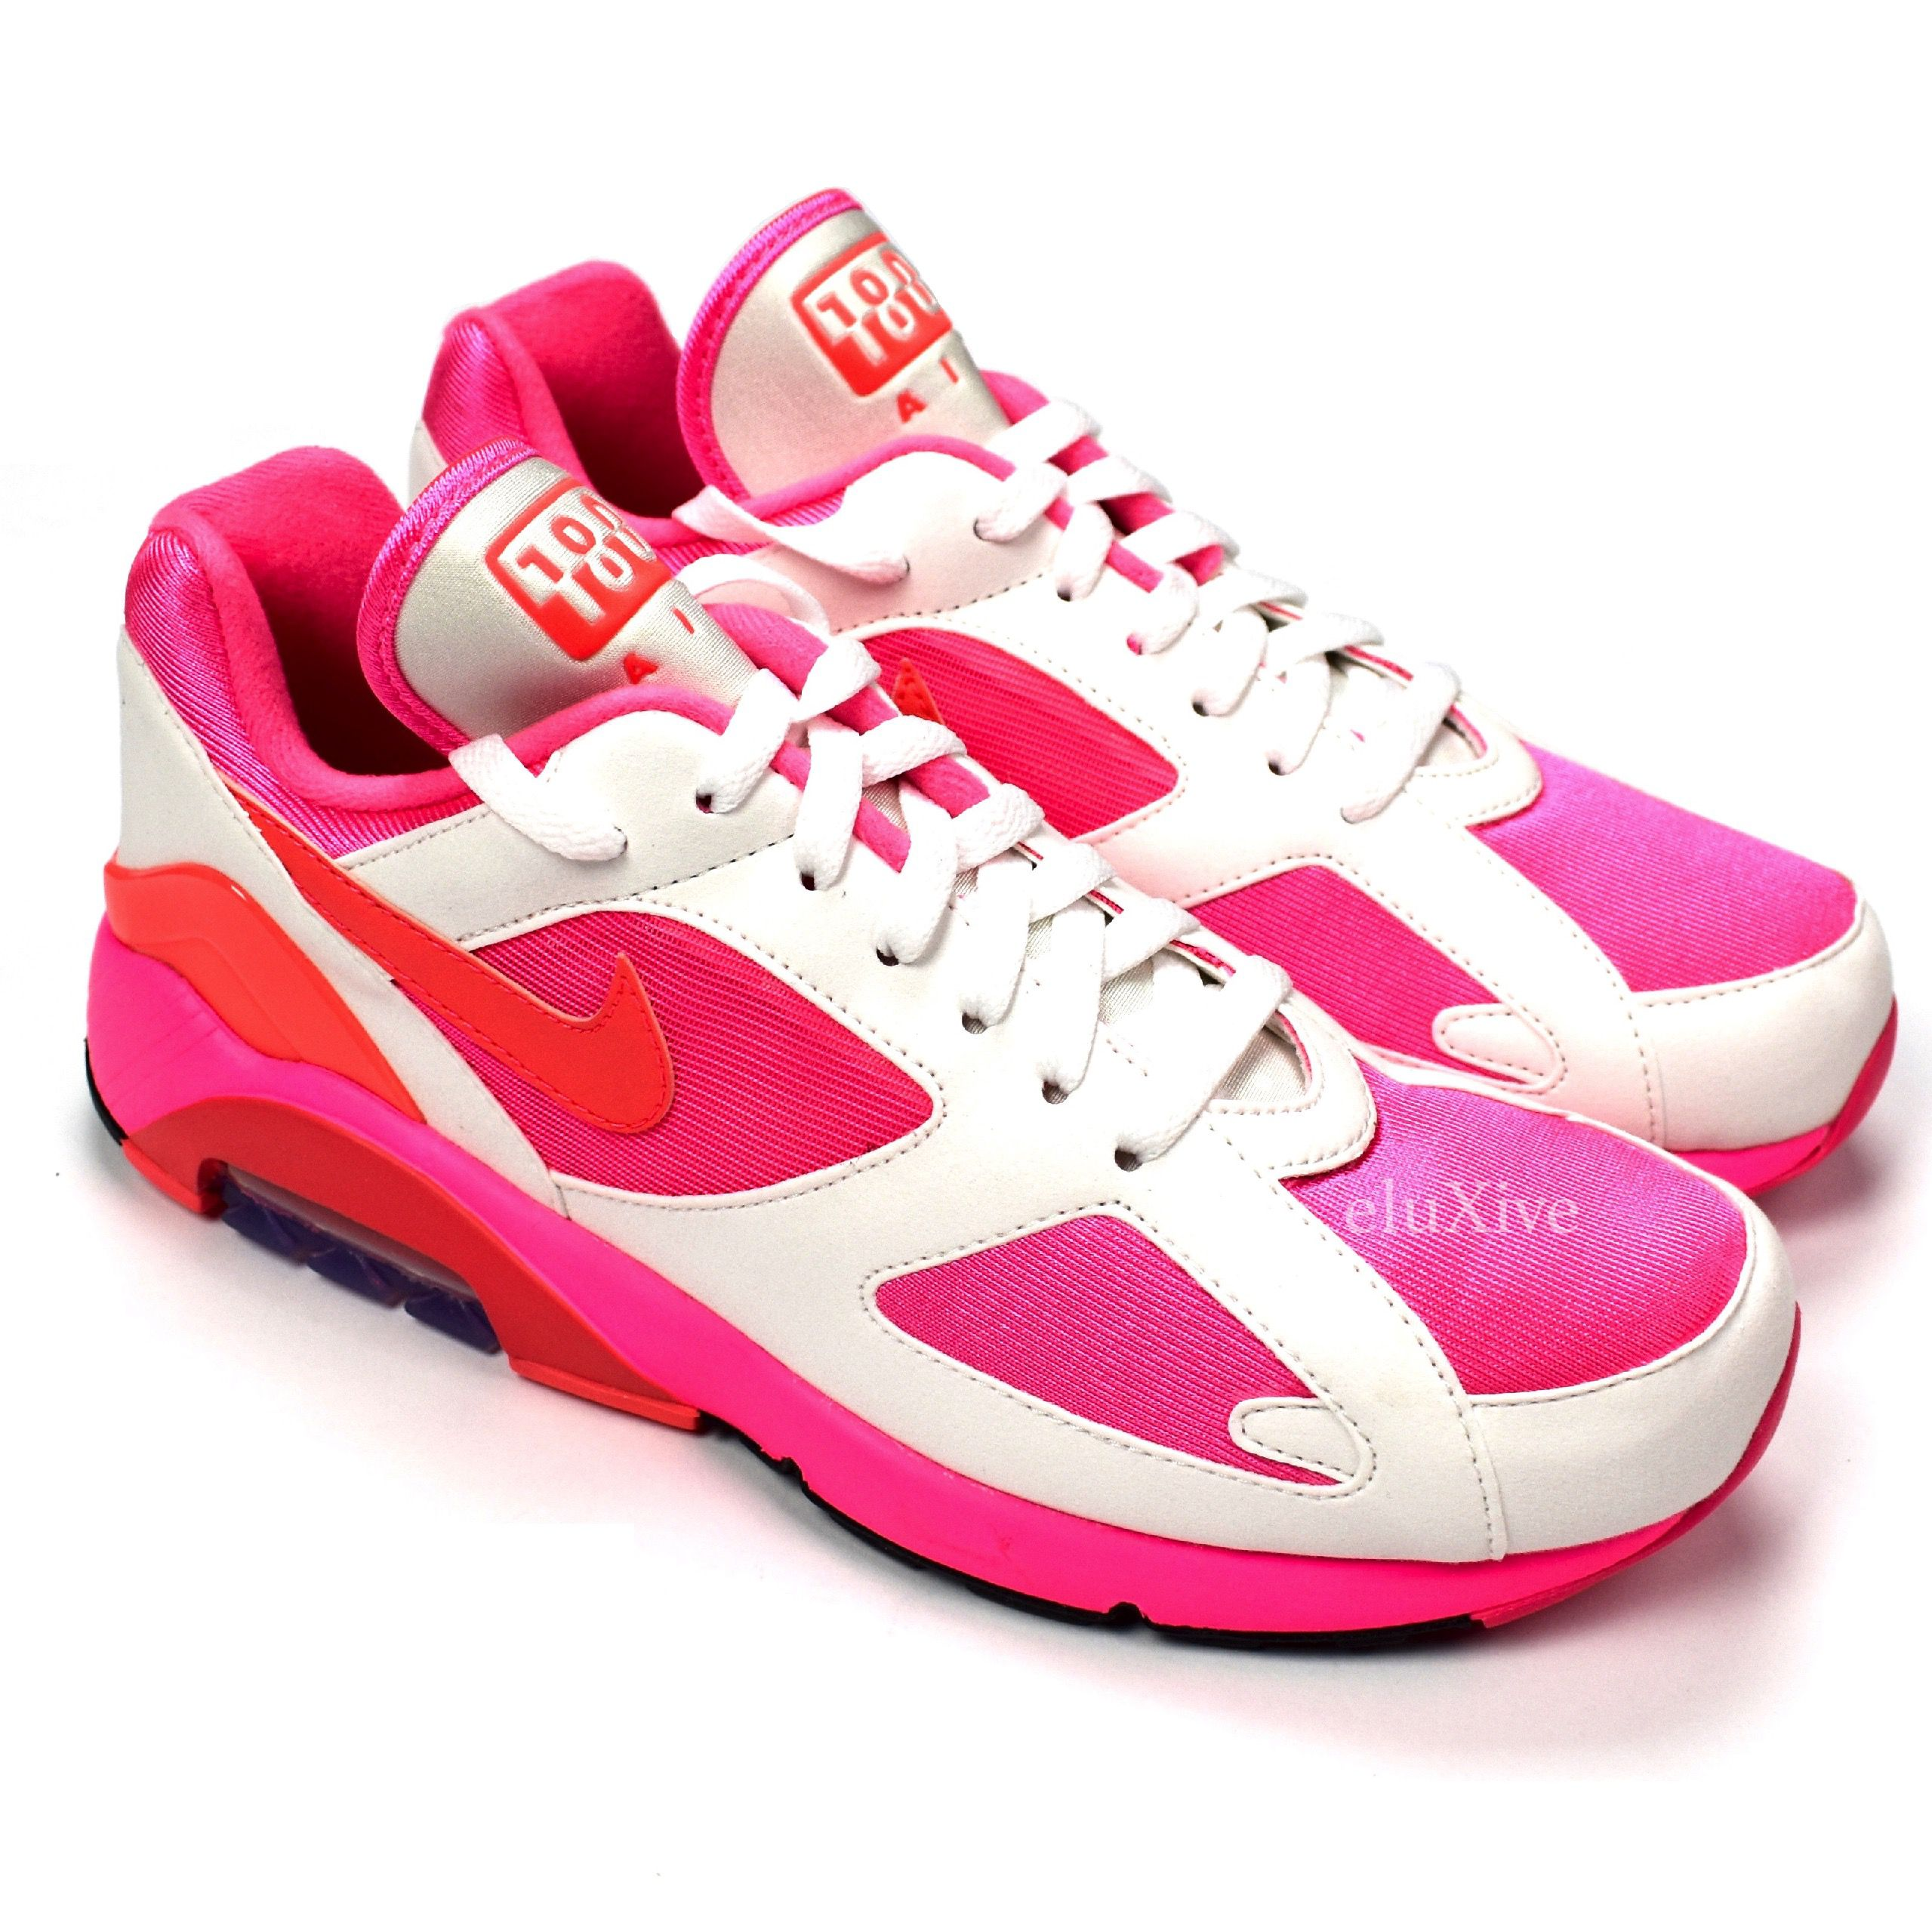 nouveau style 70bf9 c3e97 CDG Air Max 180 White Pink DS